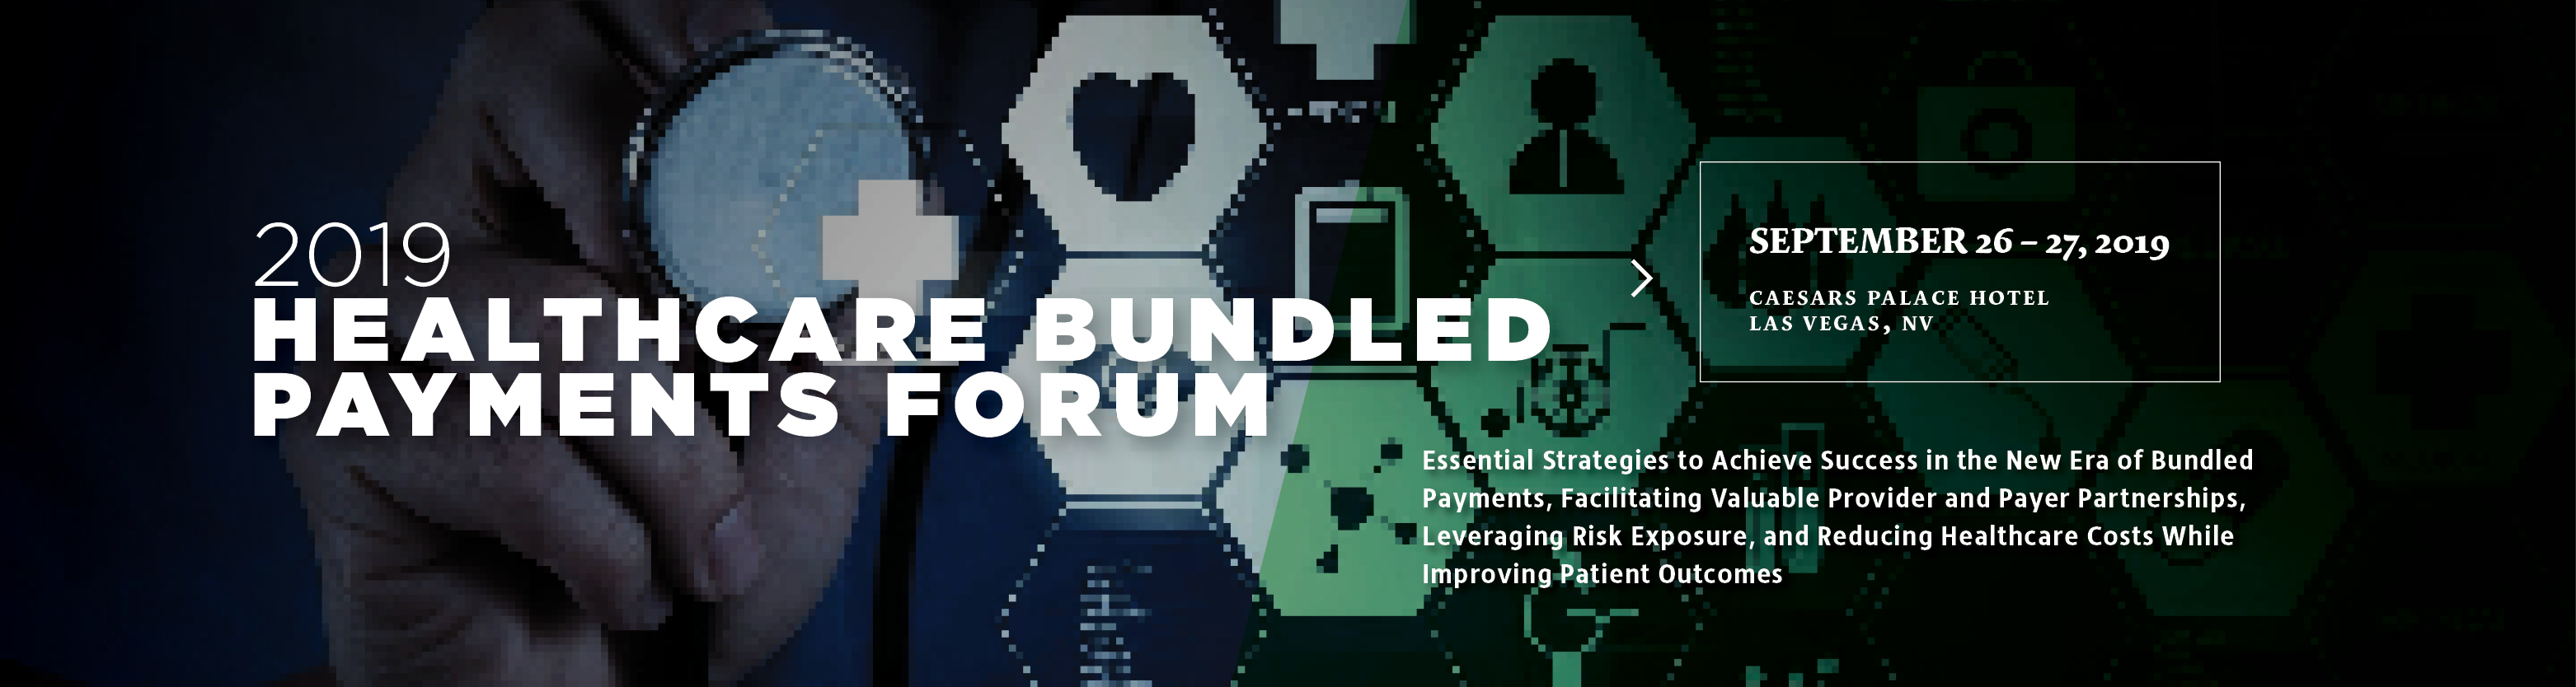 2019 Healthcare Bundled Payments Forum